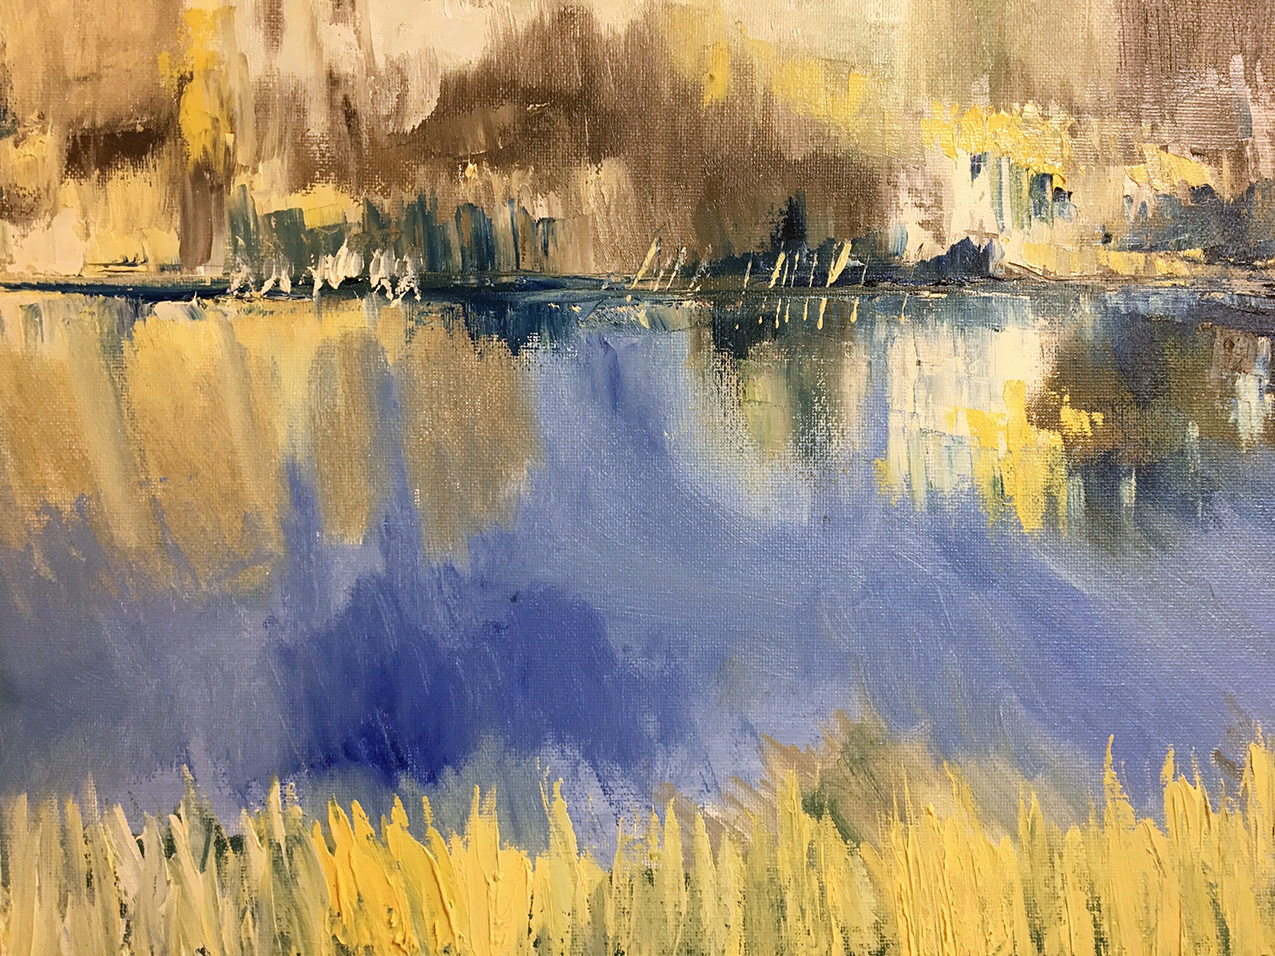 abstract painting of a blue river with gold grass banks